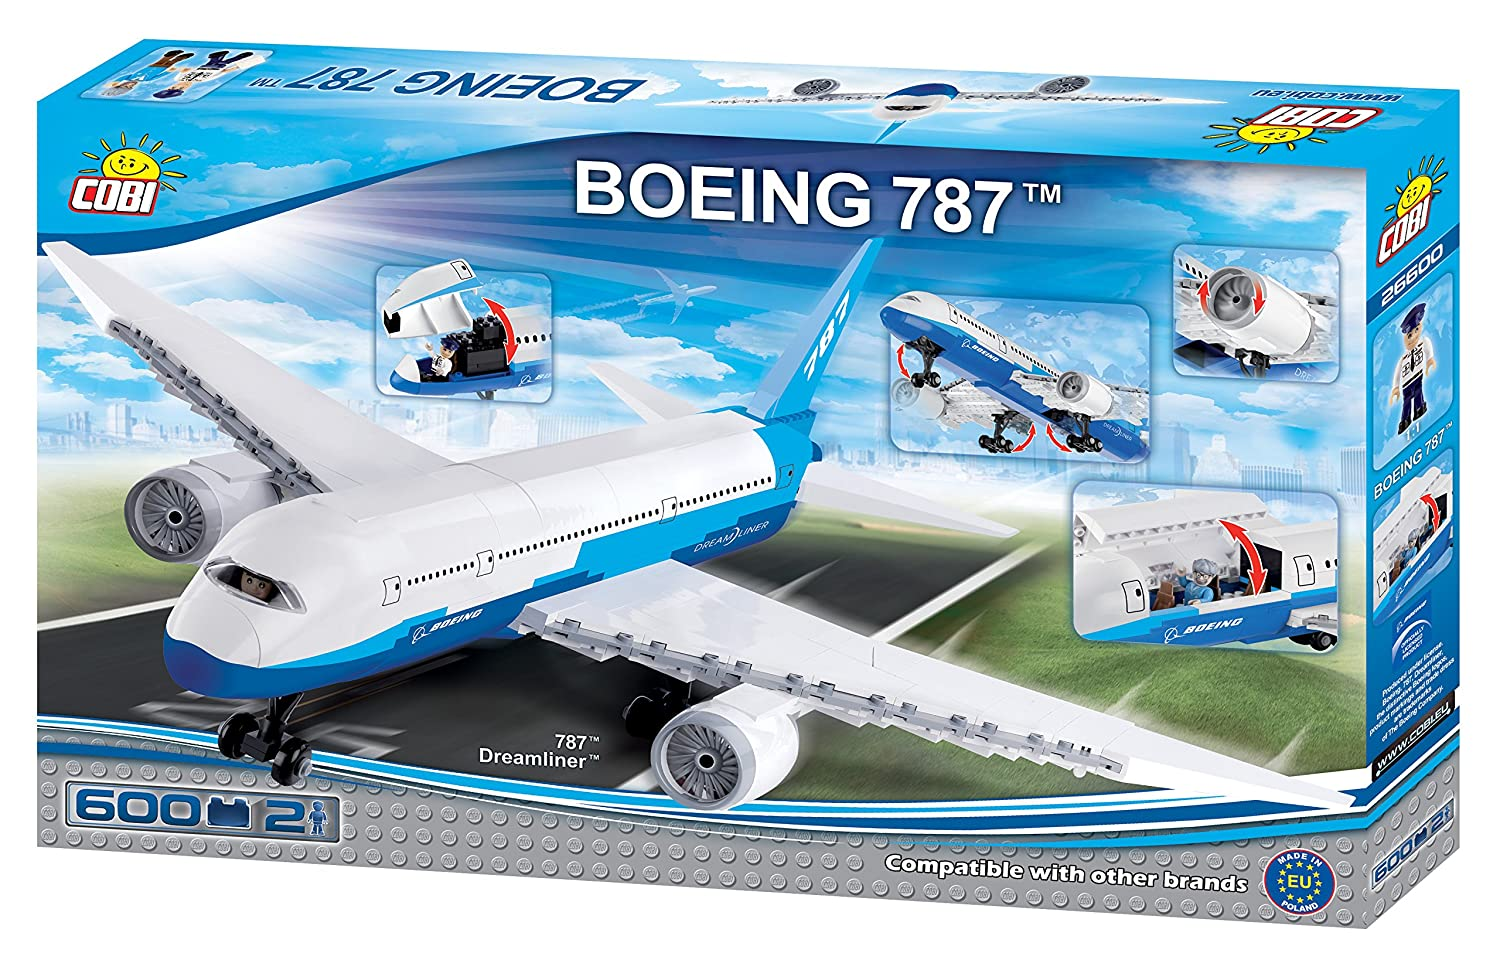 COBI 26600 Boeing 787 Dreamliner: Amazon co uk: Toys & Games